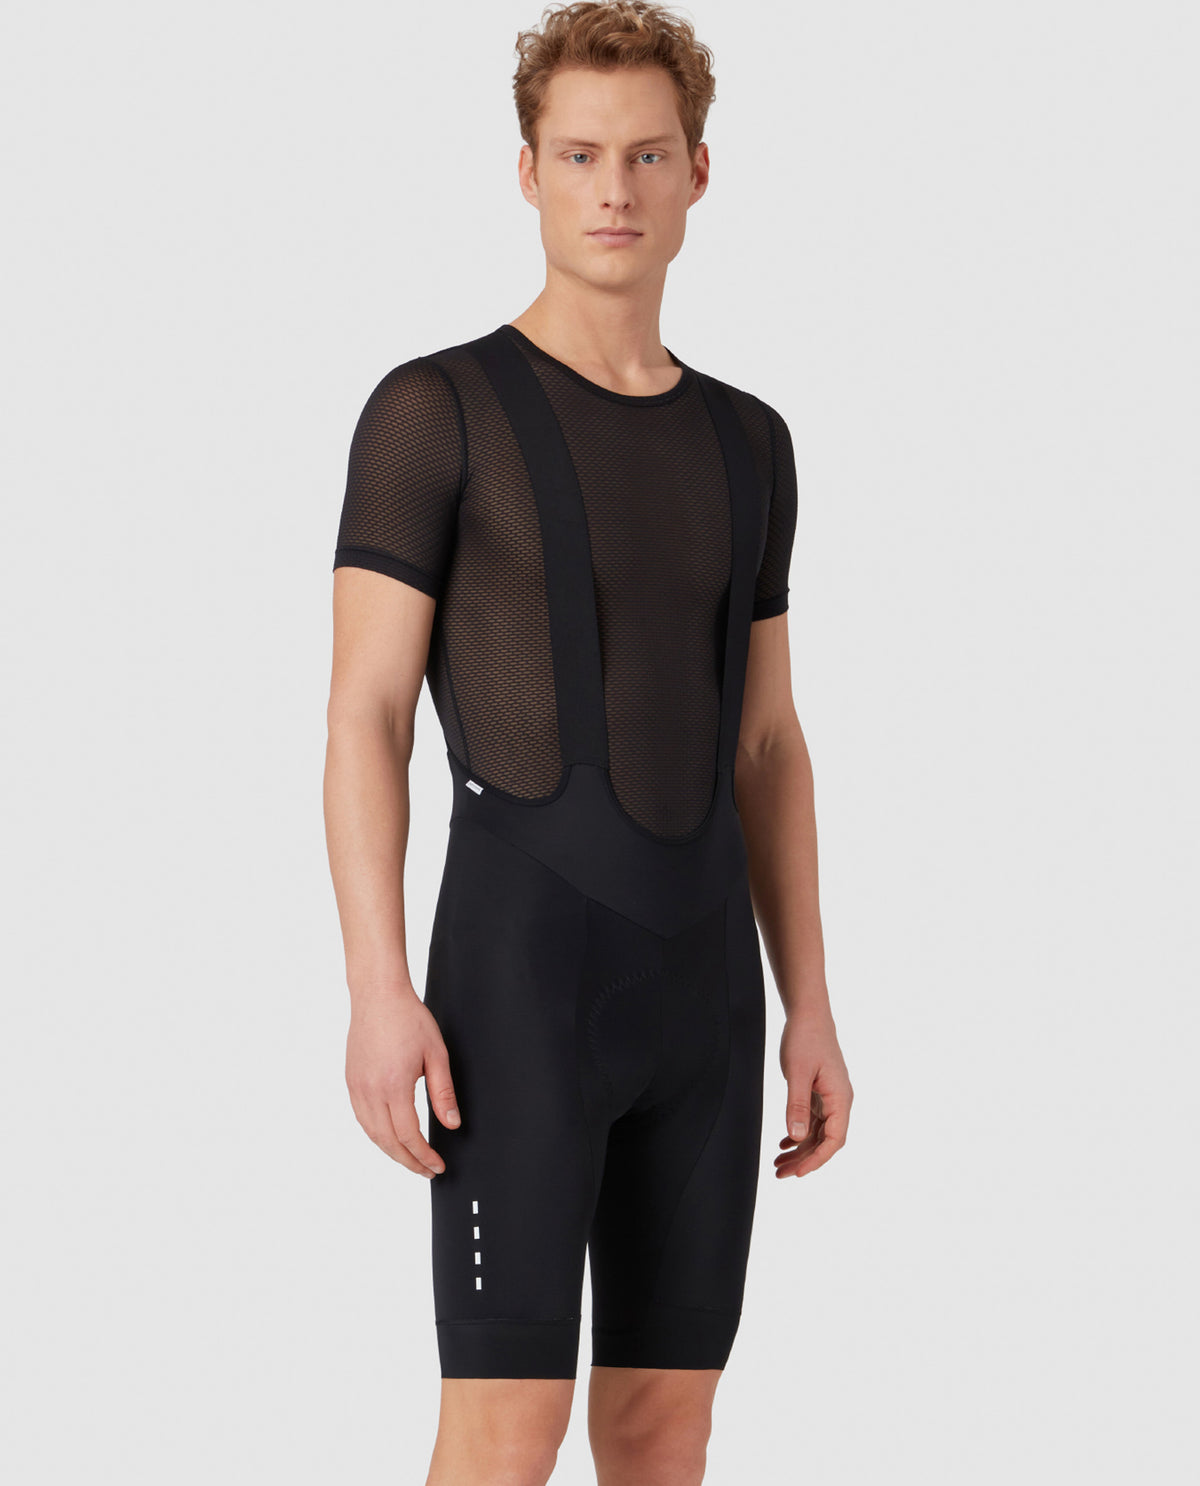 PSN Bib Shorts Black